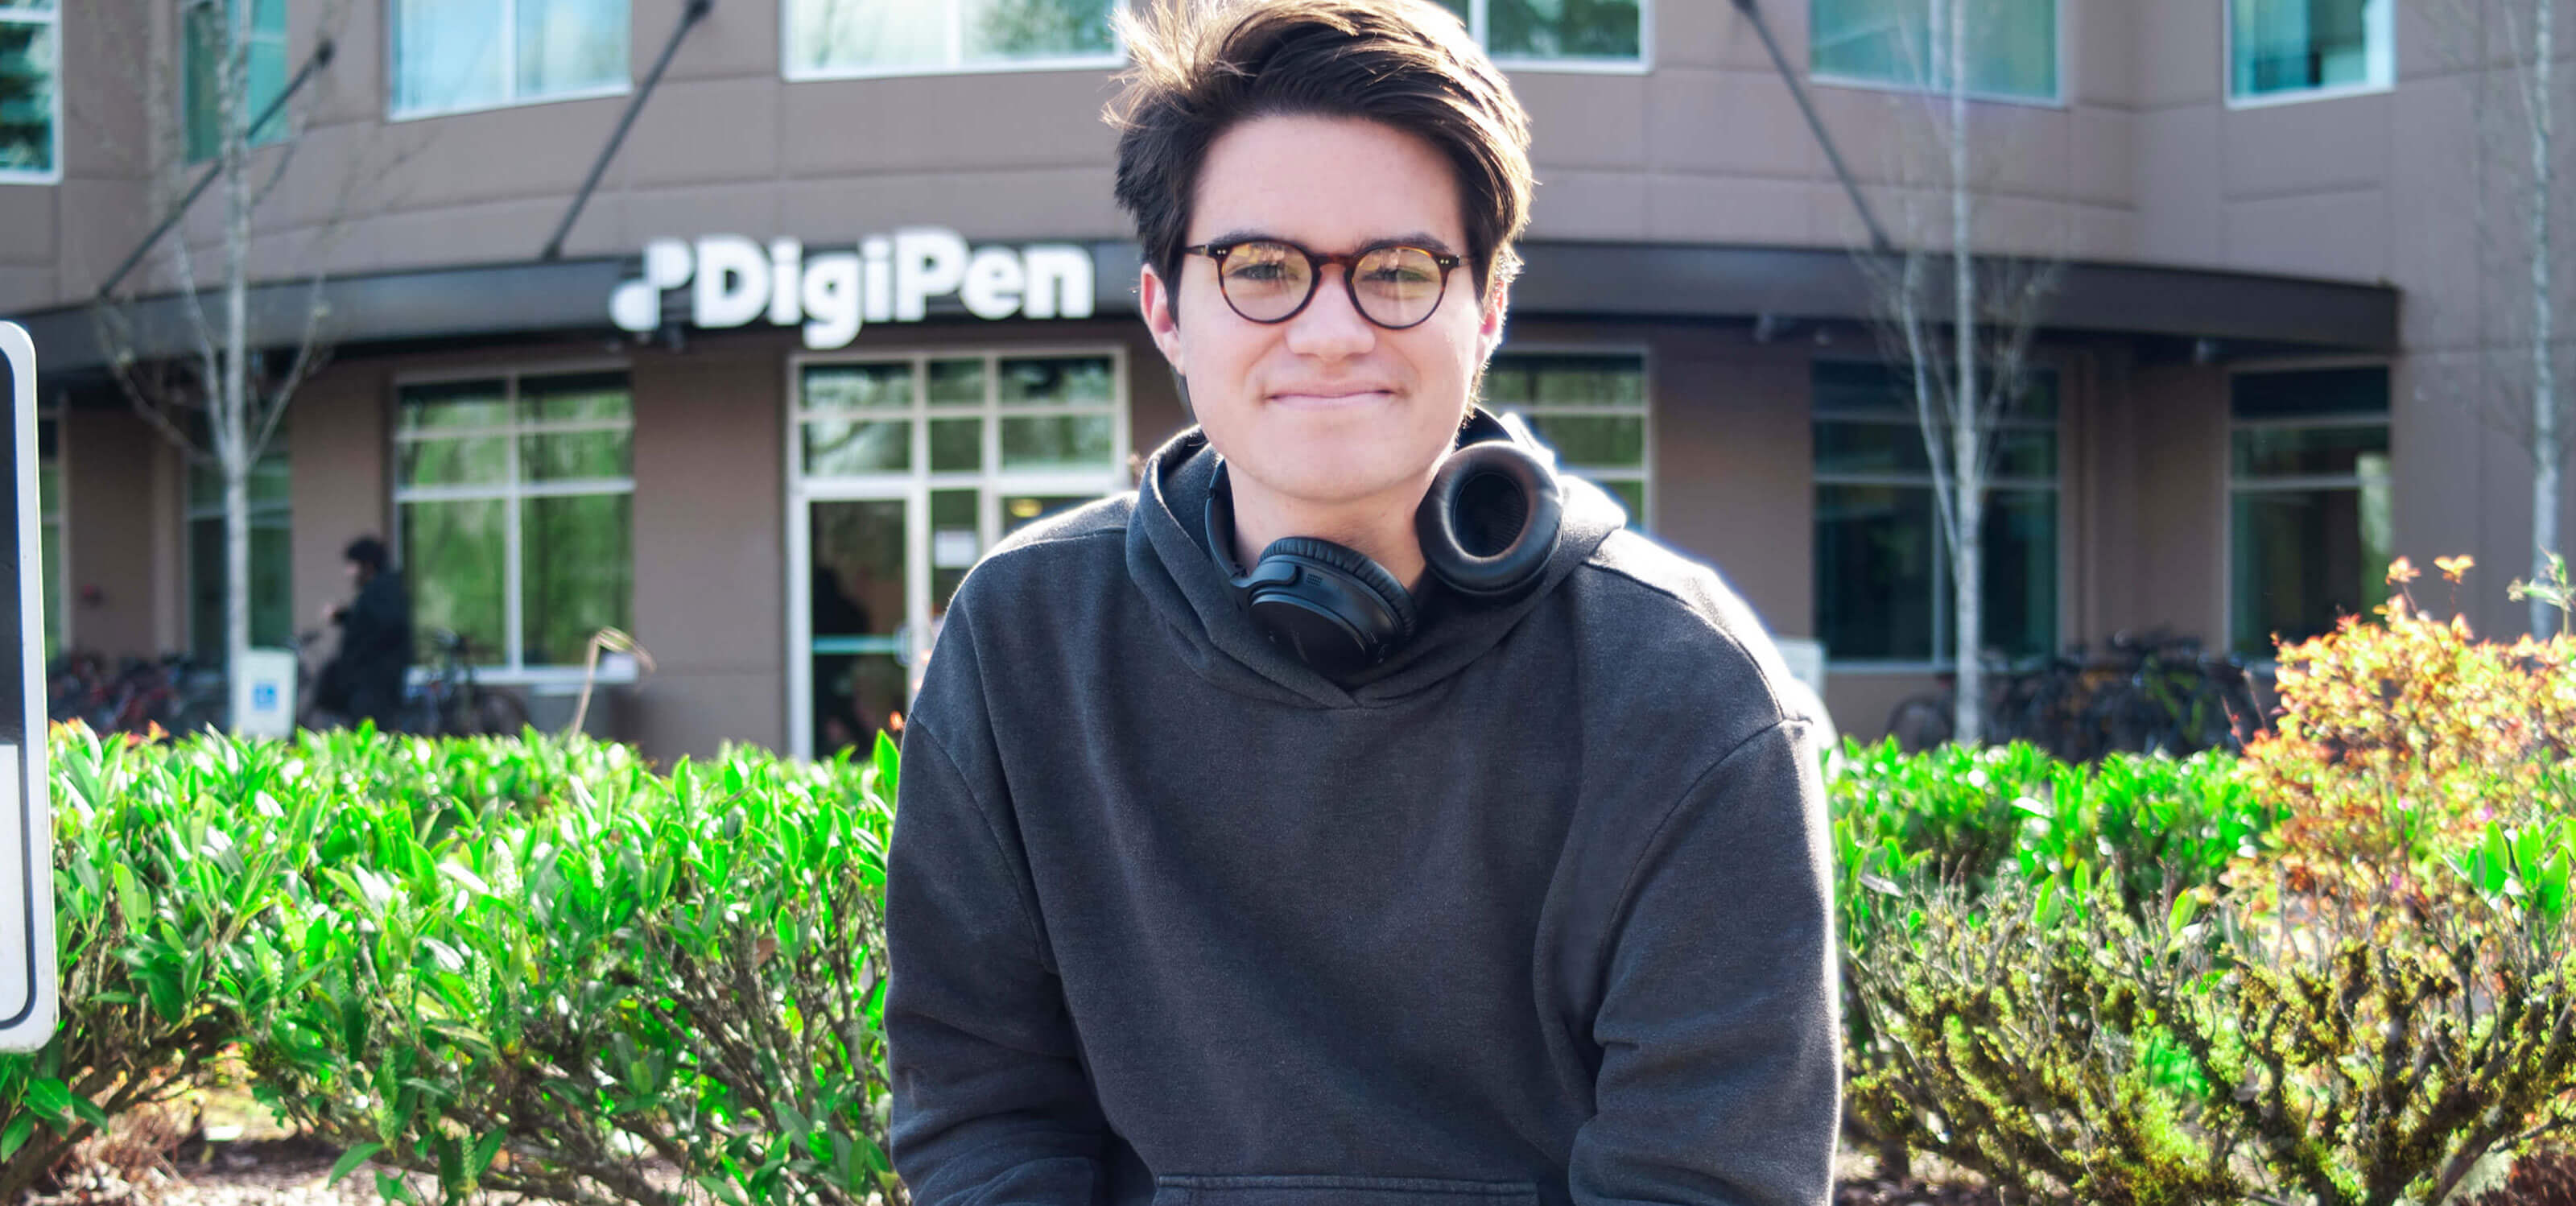 A student wearing headphones smiles on a sunny day in front of the DigiPen building